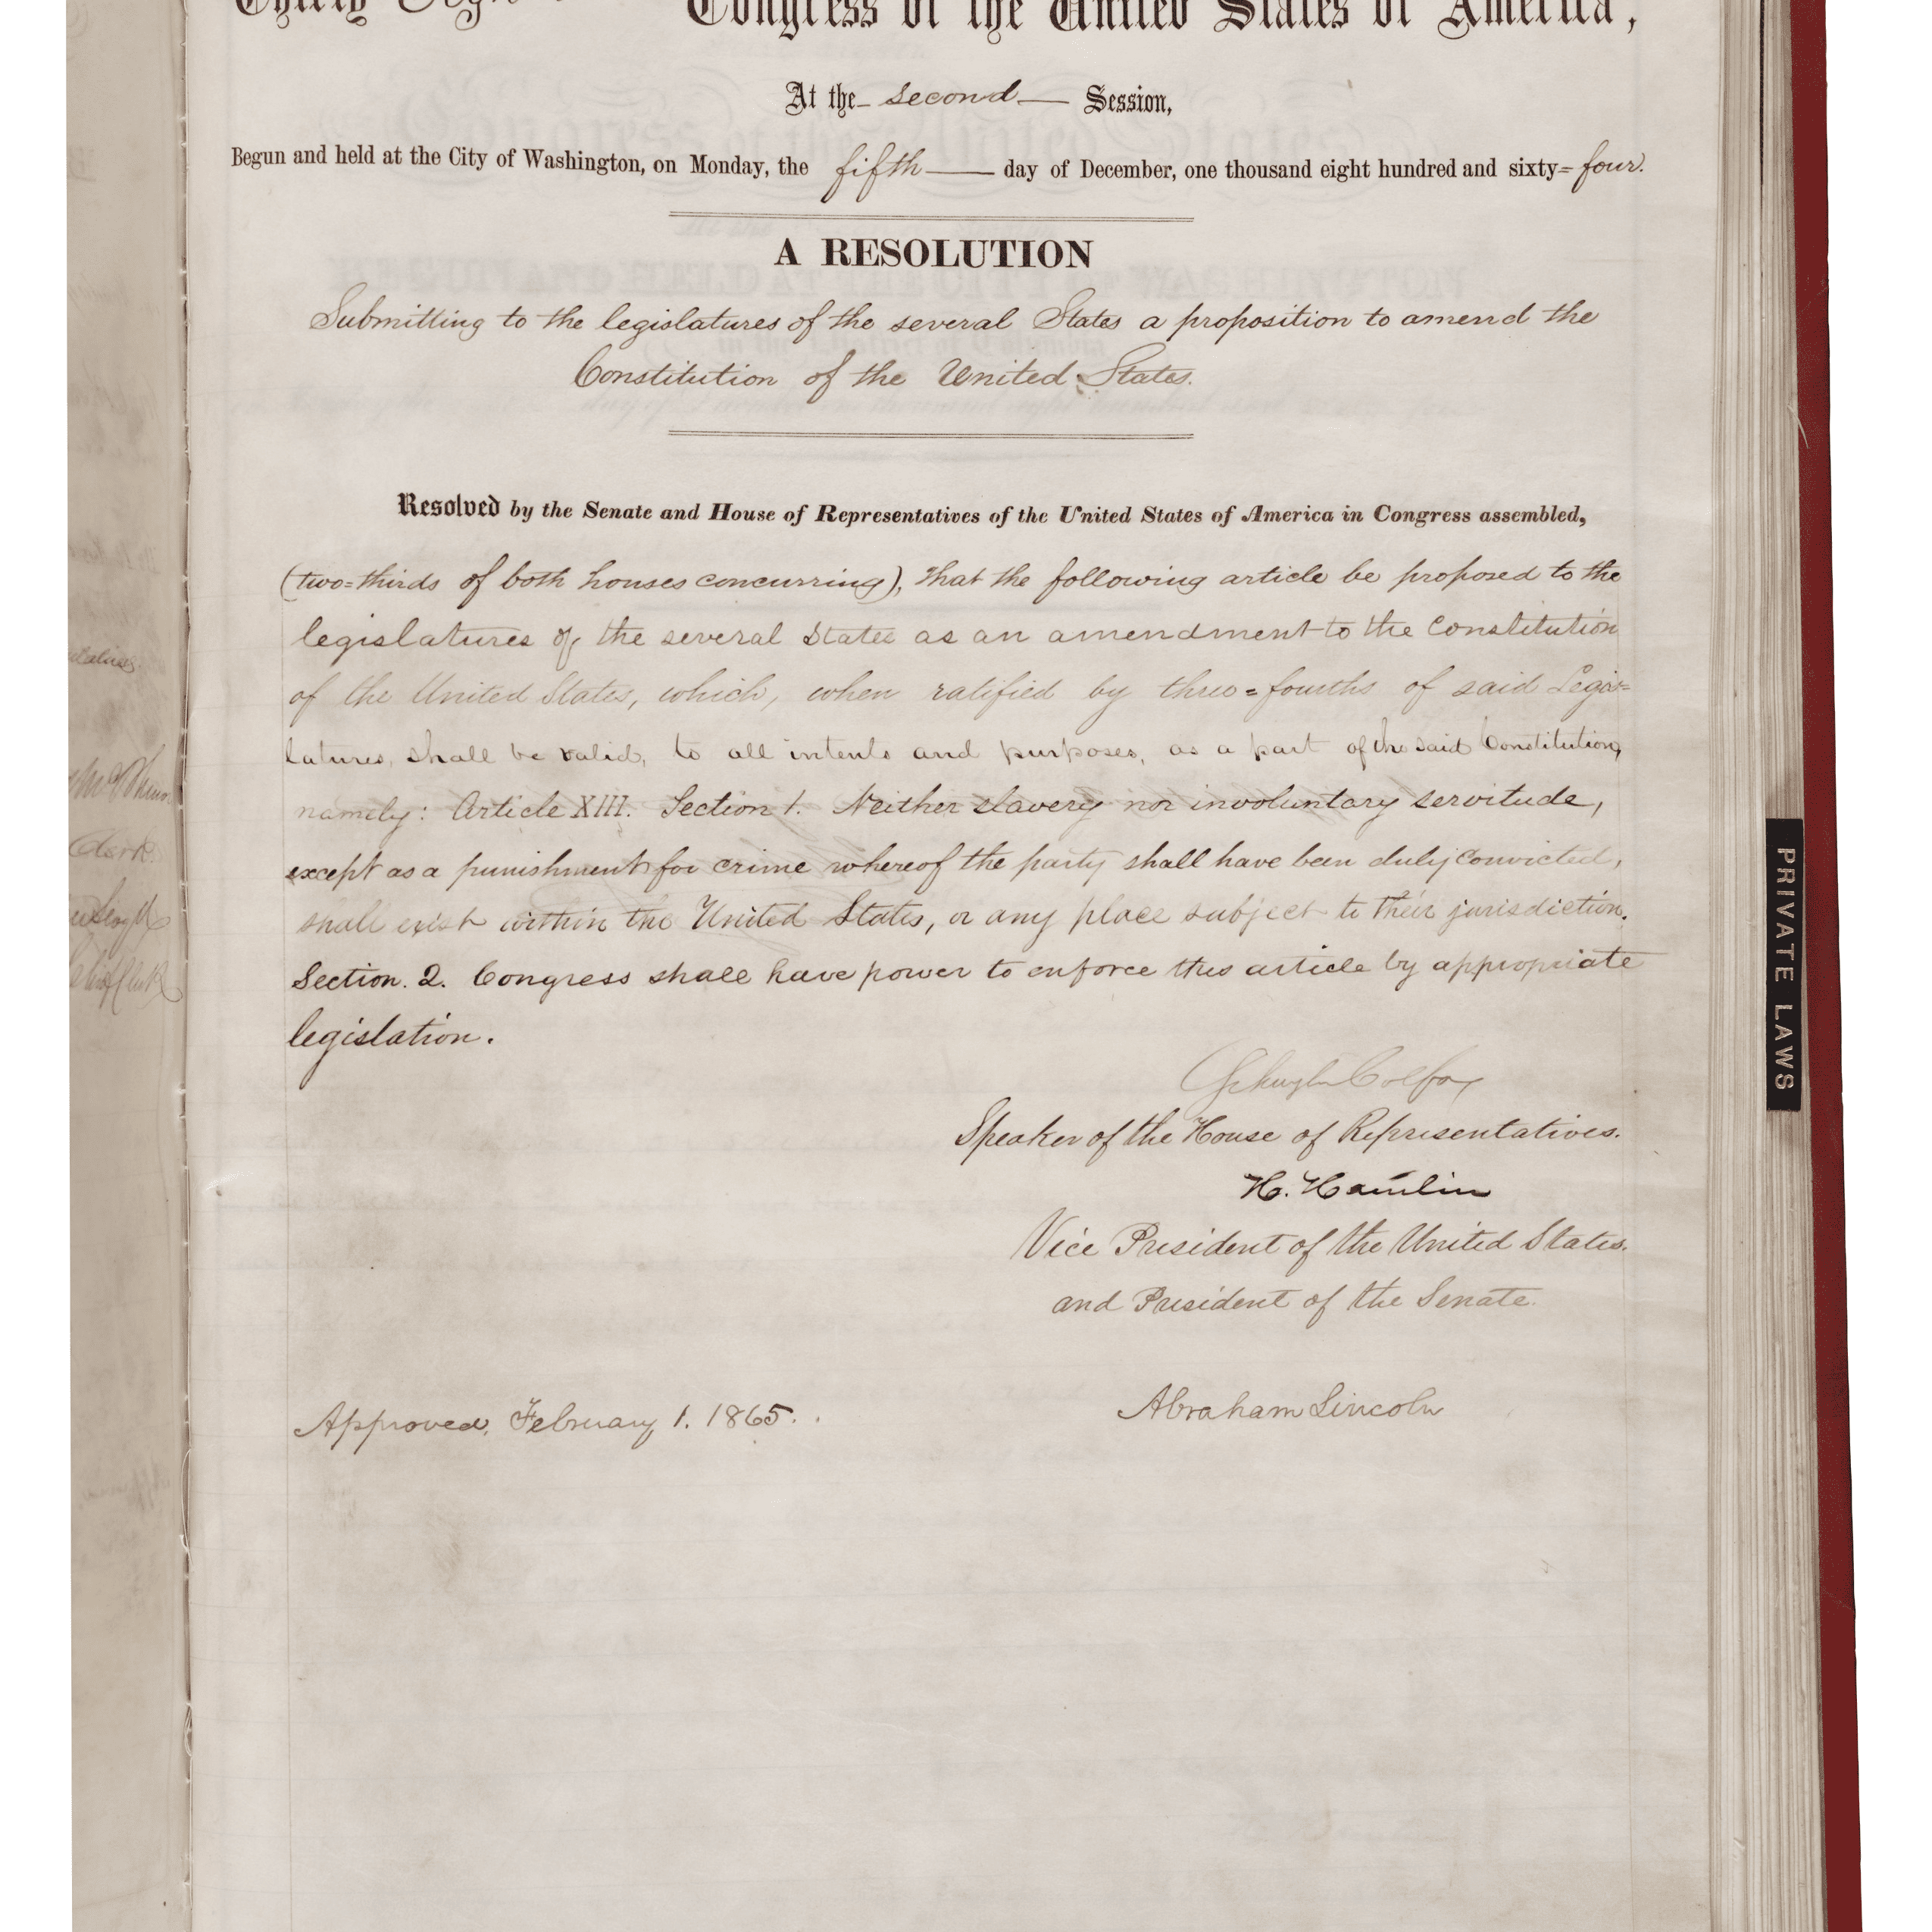 the 13th amendment: history and impact